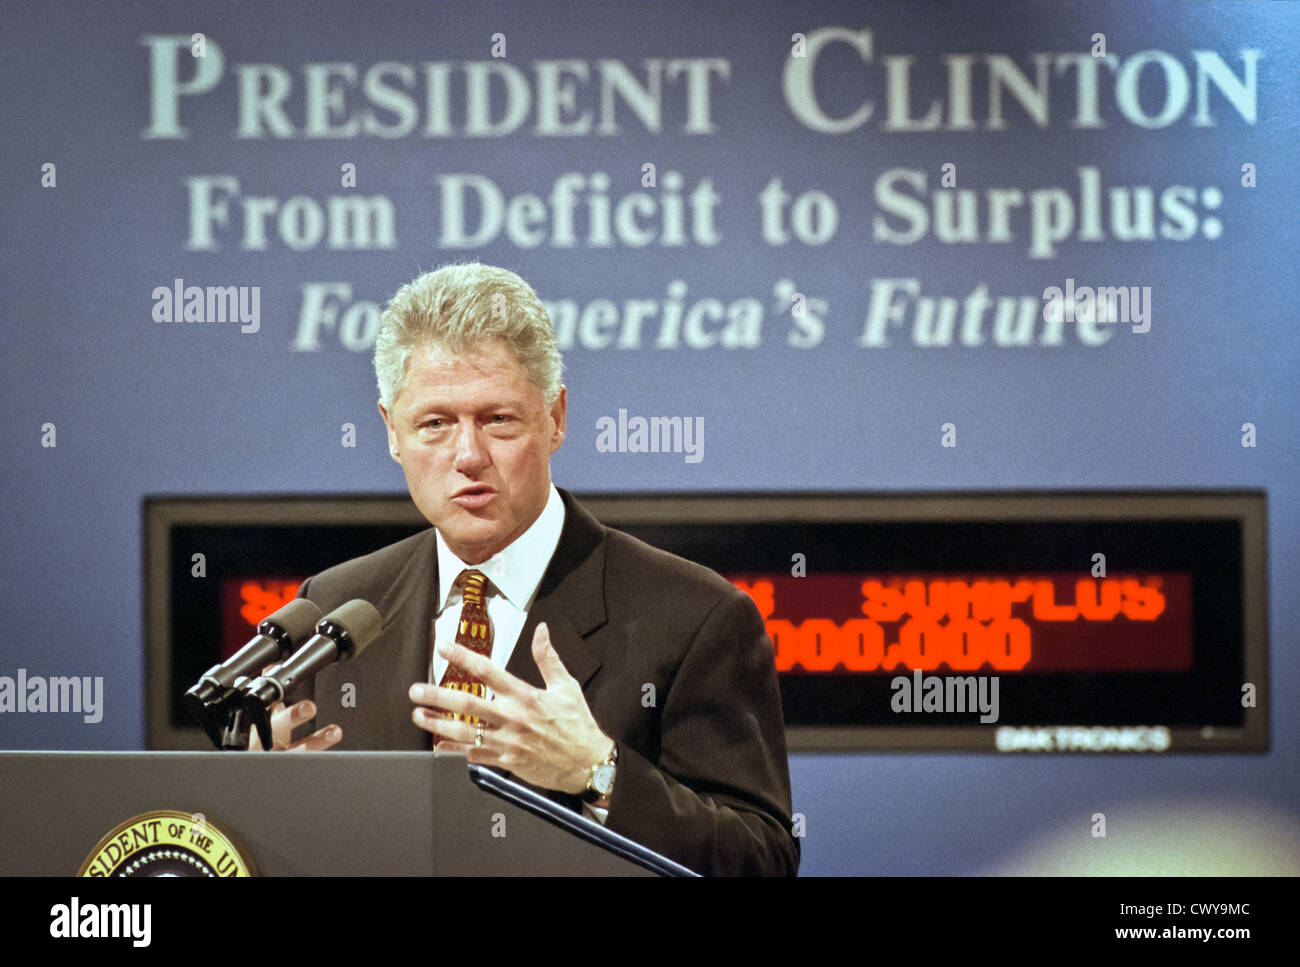 US President Bill Clinton standing in front of the new Budget Surplus Clock announces the first federal budget surplus - Stock Image